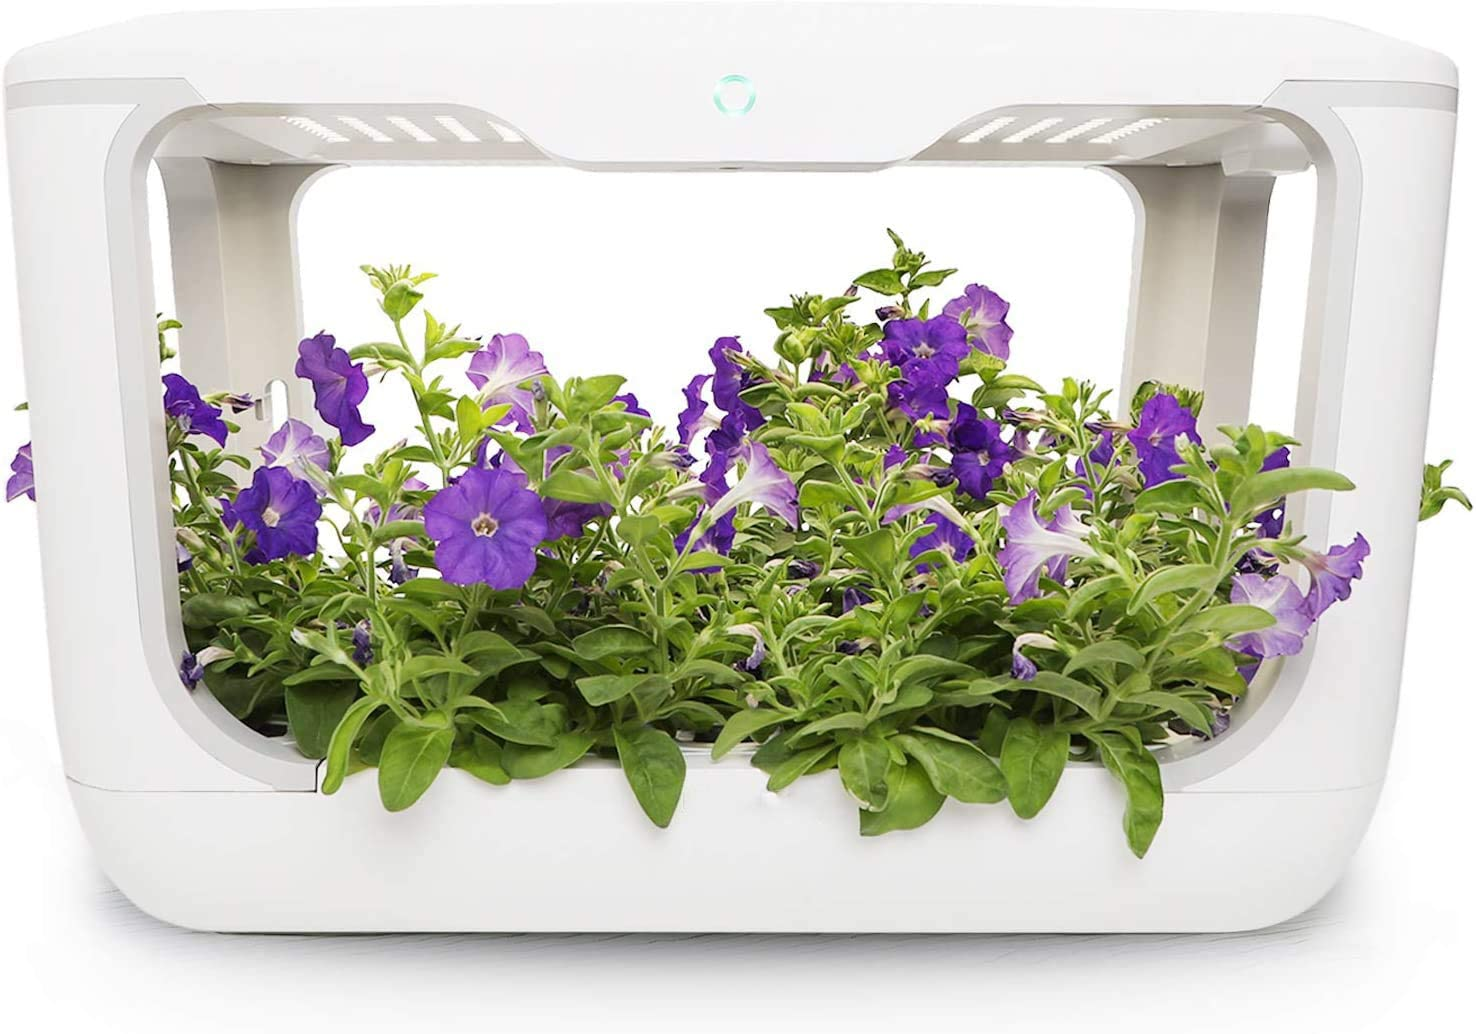 Kozzyfresh Indoor Garden Kit. 70+ Herb Hydroponic Grow System. Stackable 15-Pods Smart Garden. Automatic Timer. 35W High Efficient Full-Spectrum LED.Indoor Herb Germination Kit.